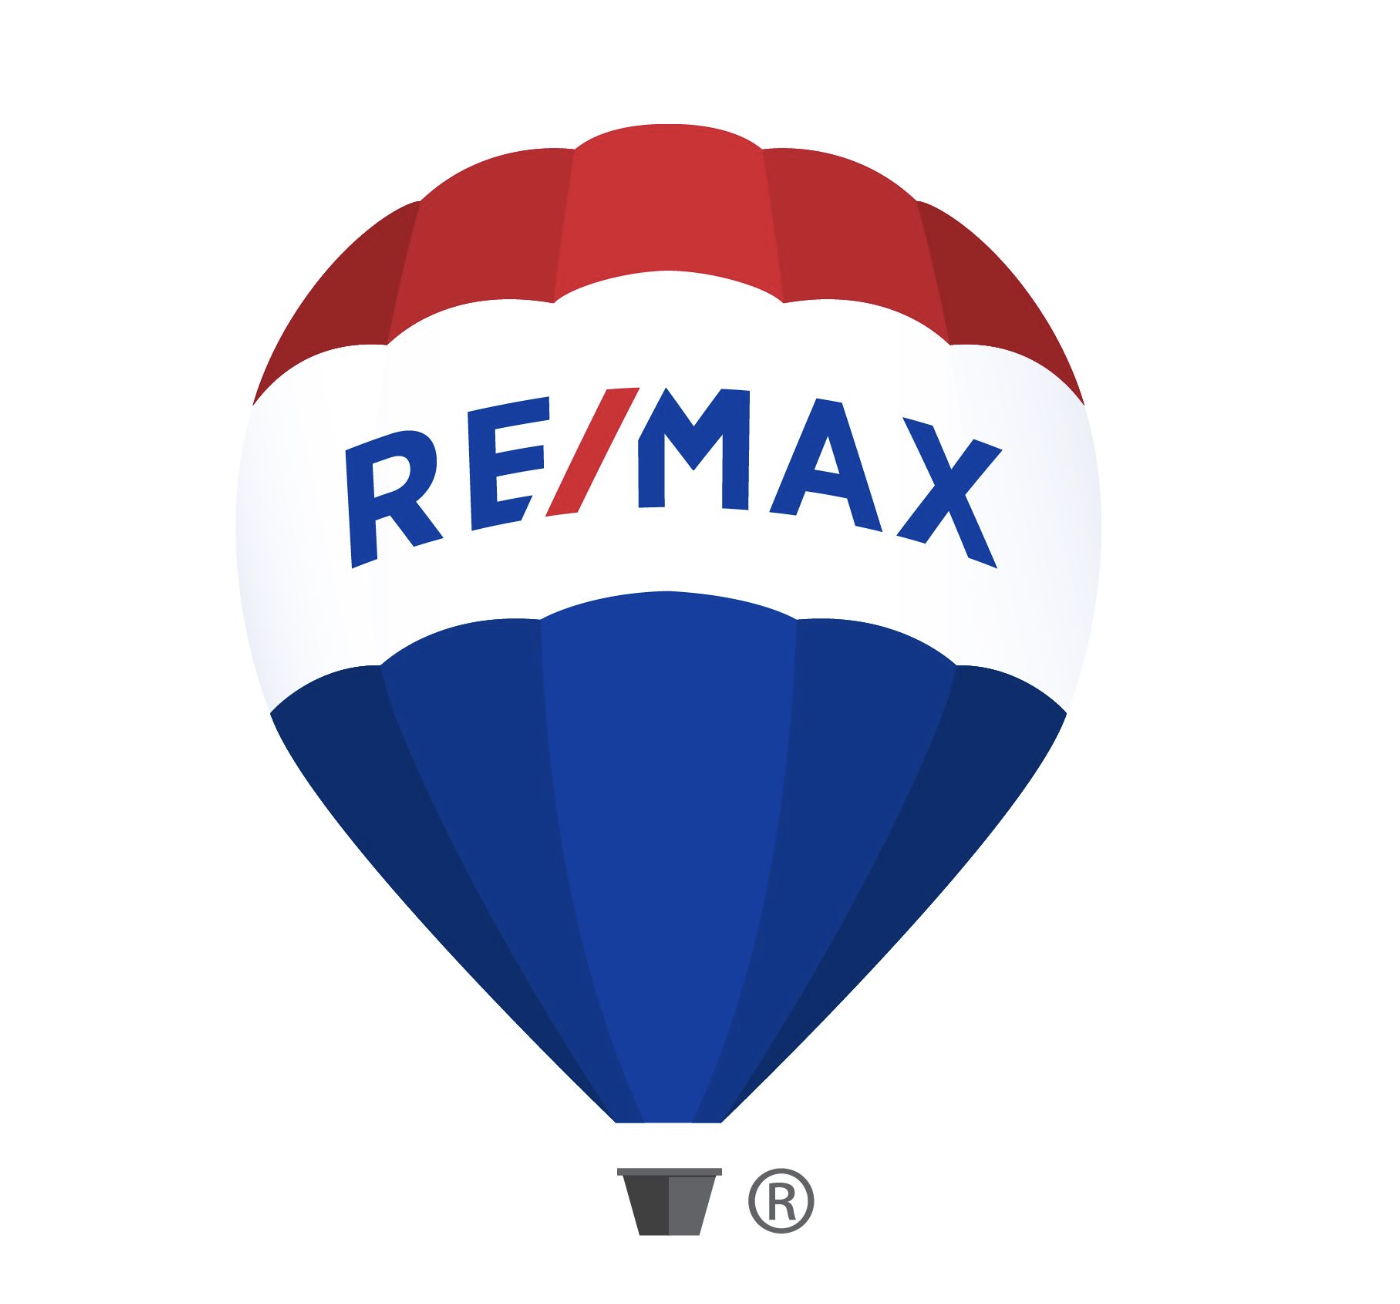 Liz McKane Re/Max - real estate agent rochester - realtor rochester